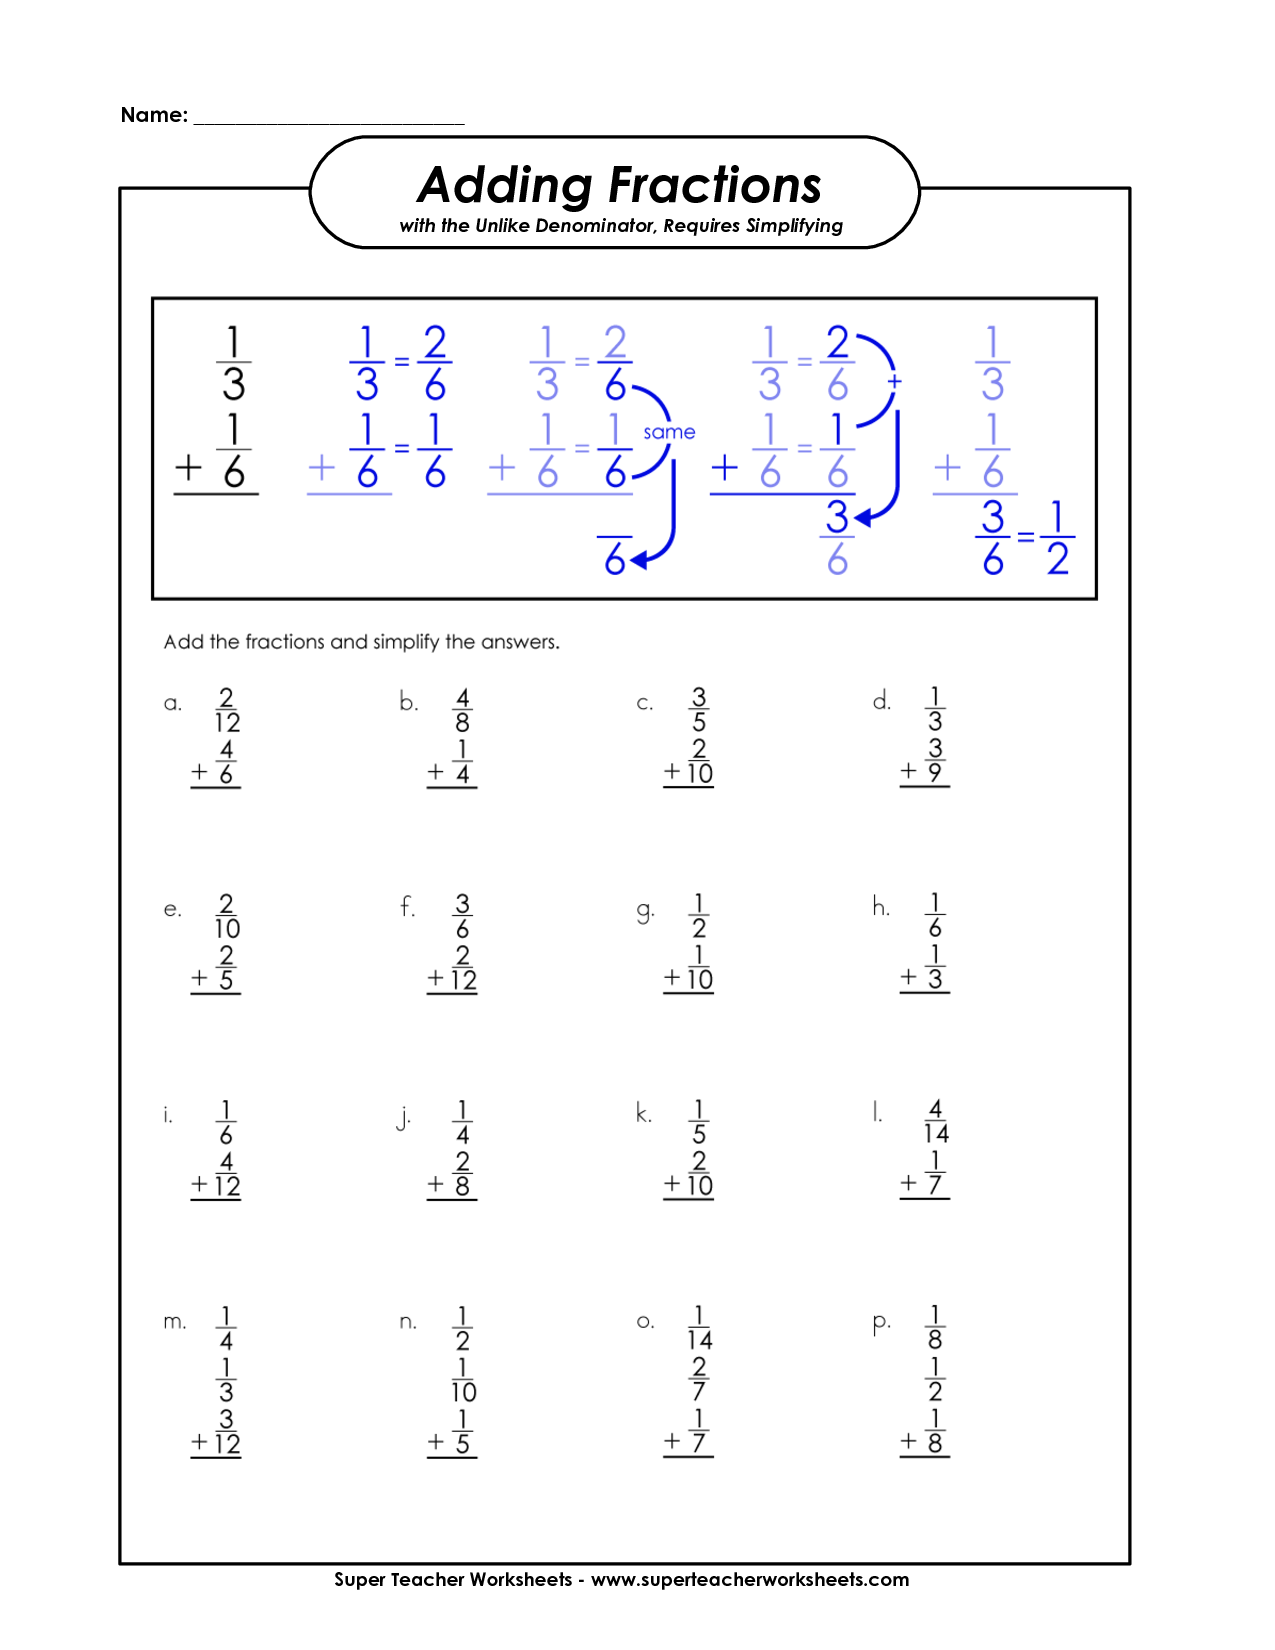 15 Best Images Of Super Teacher Worksheets Patterns